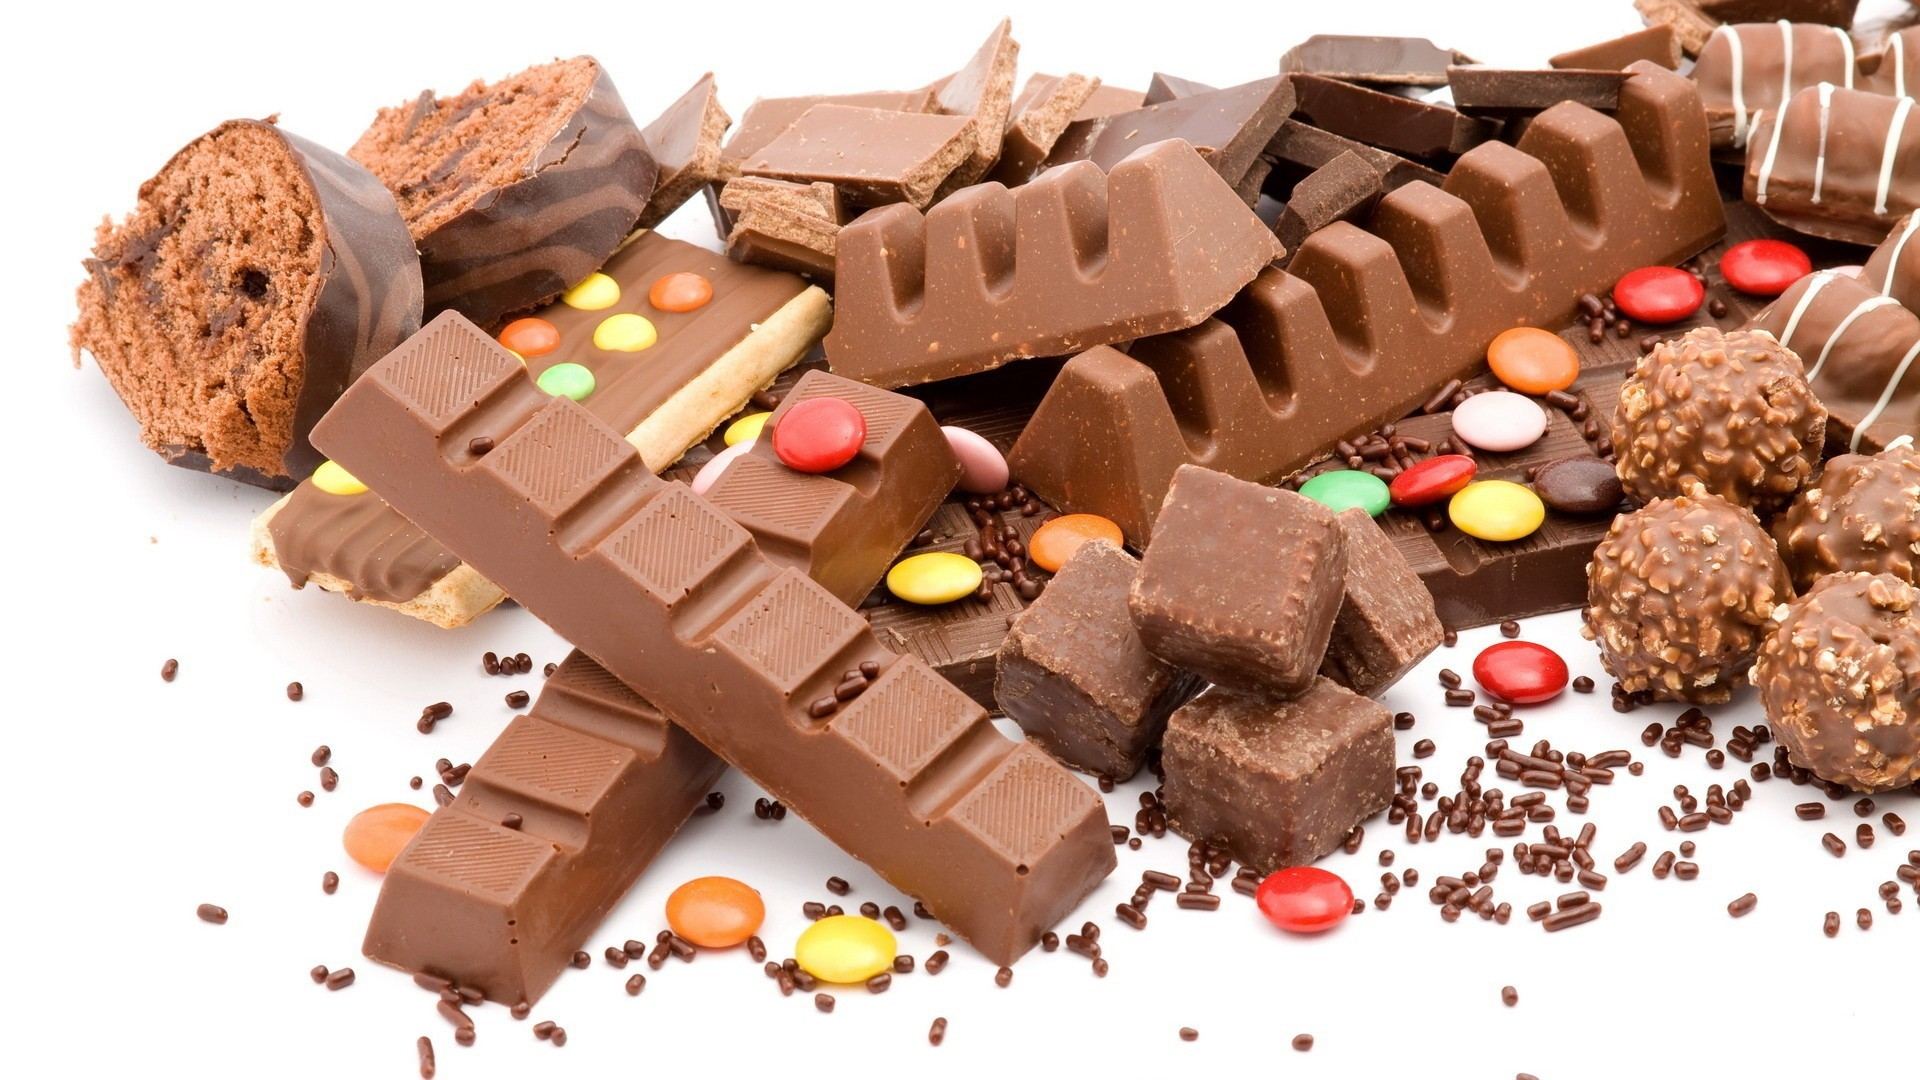 Free Chocolate Candy Wallpaper